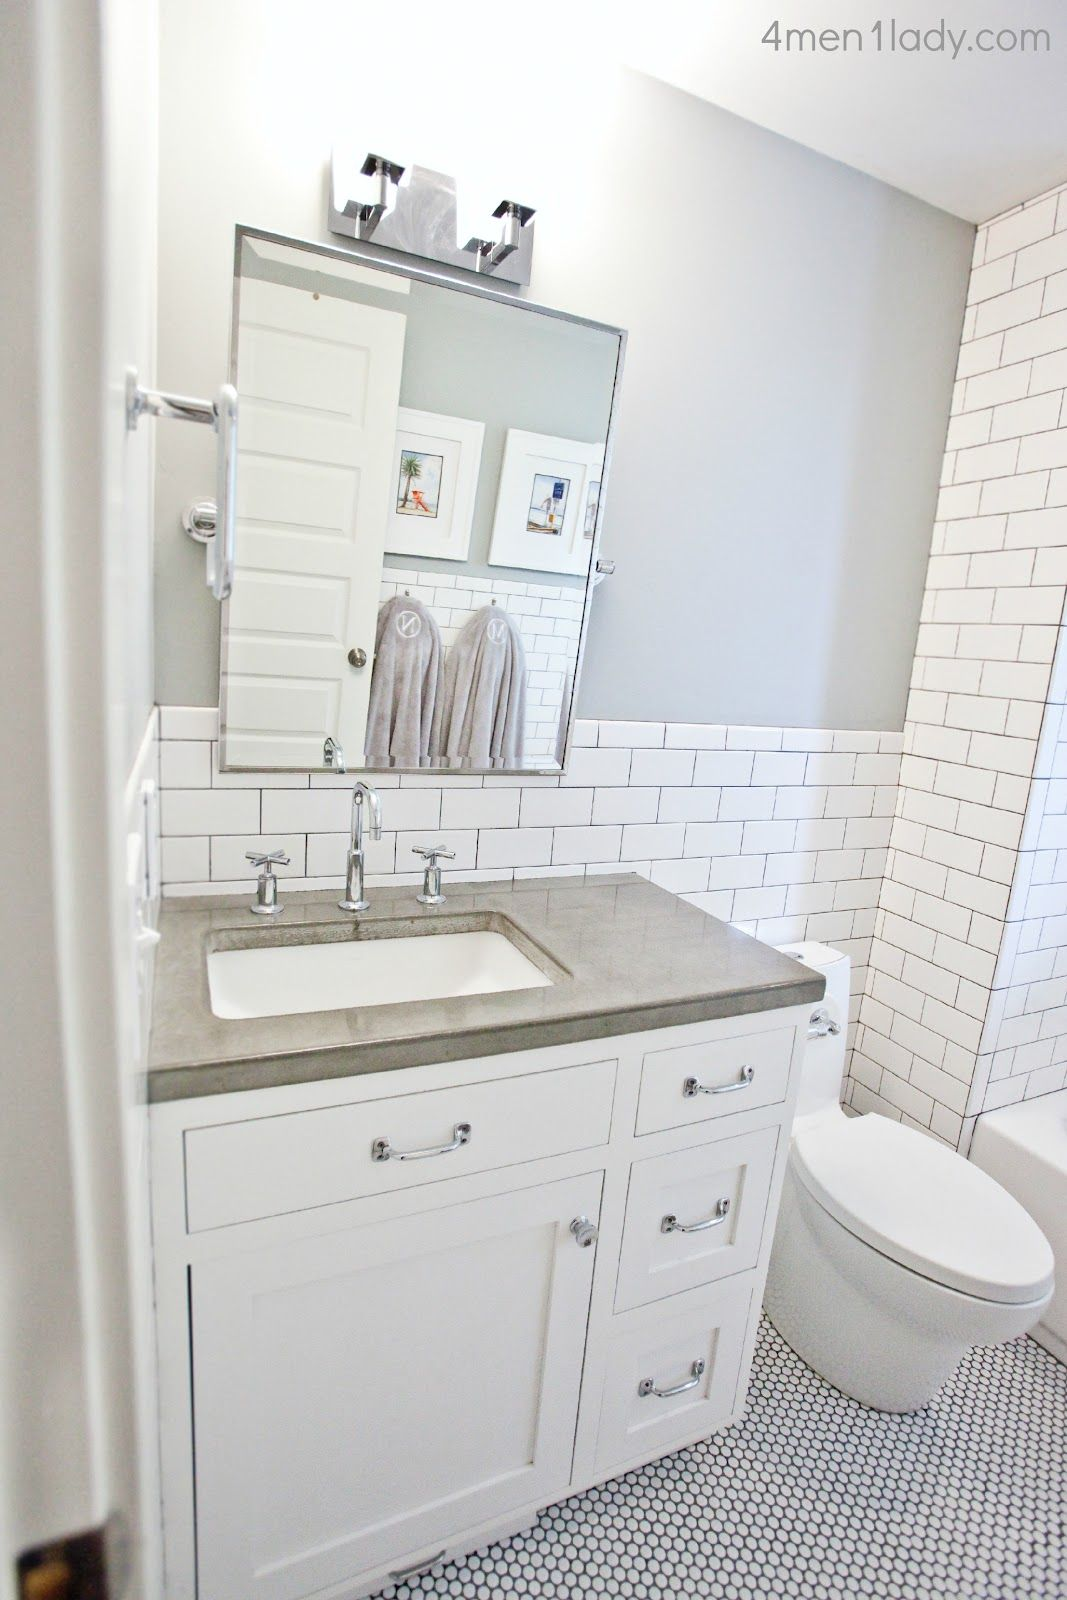 5 Phenomenal Bathroom Tile Combinations: Love The Combination Of Subway Tile And Penny Tile